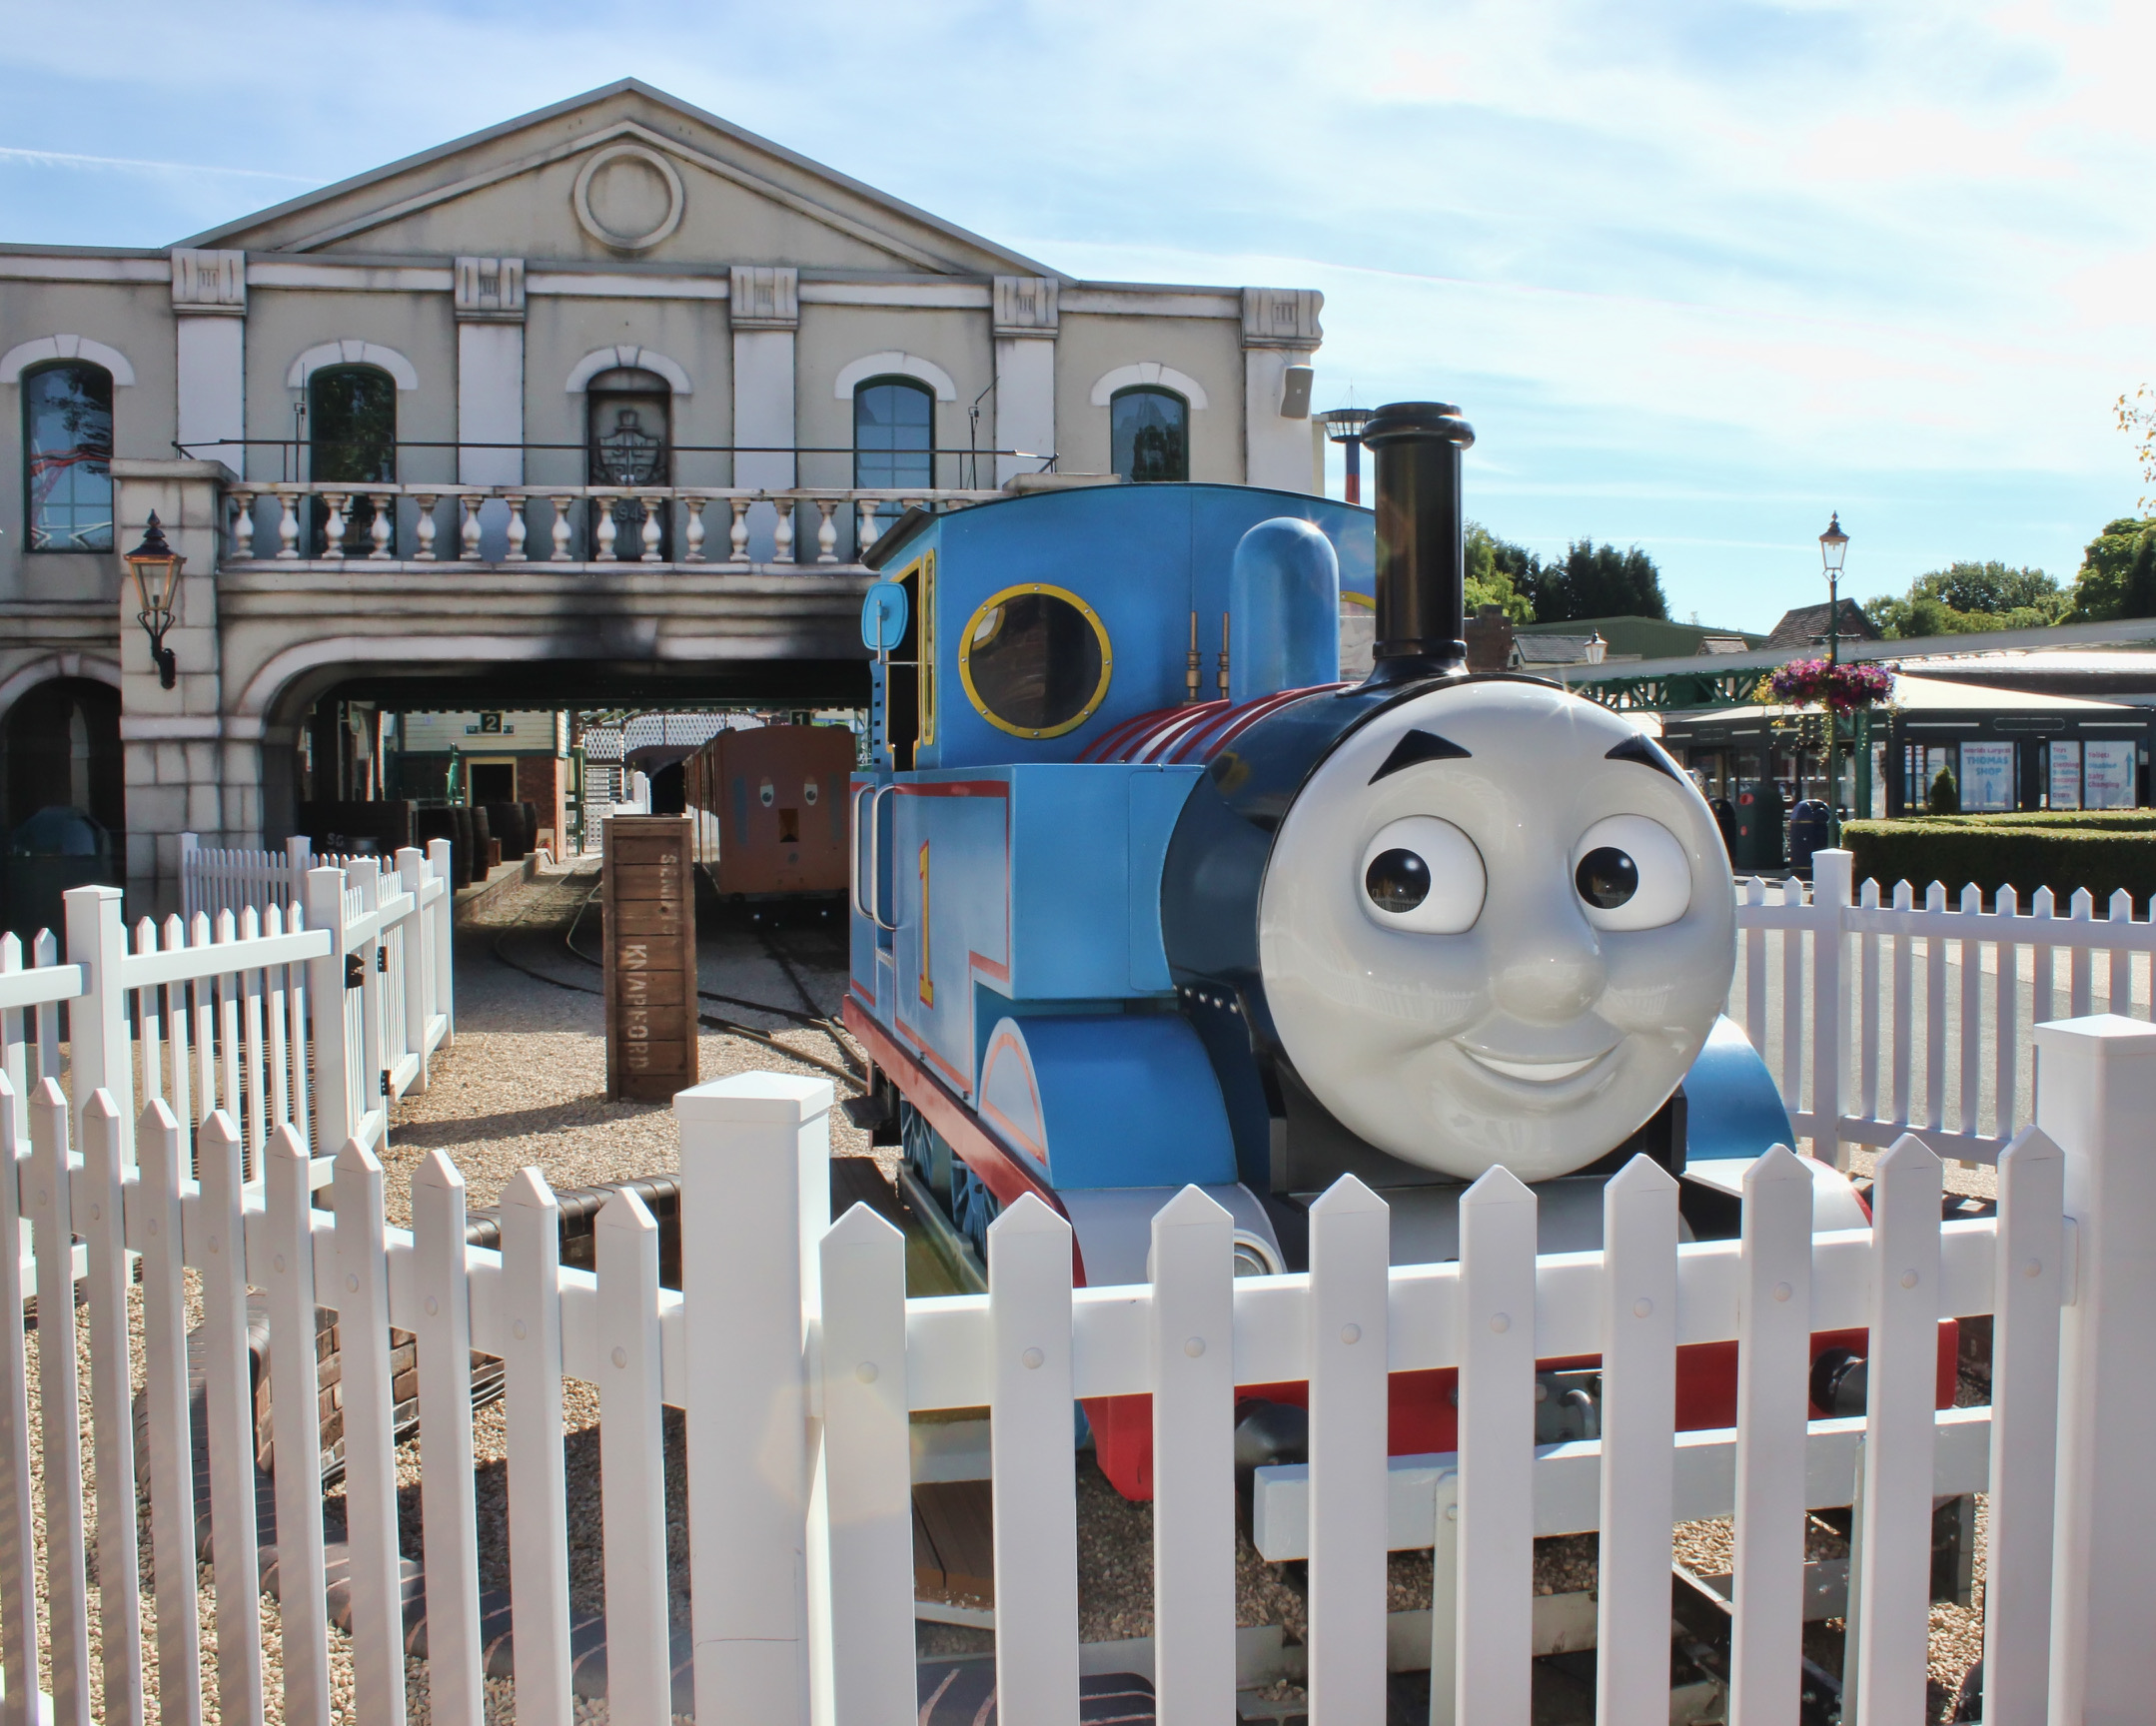 Thomas Land at Drayton Manor Theme Park review – what's on, is it worth the money and how does it compare to CBeebies Land at Alton Towers?